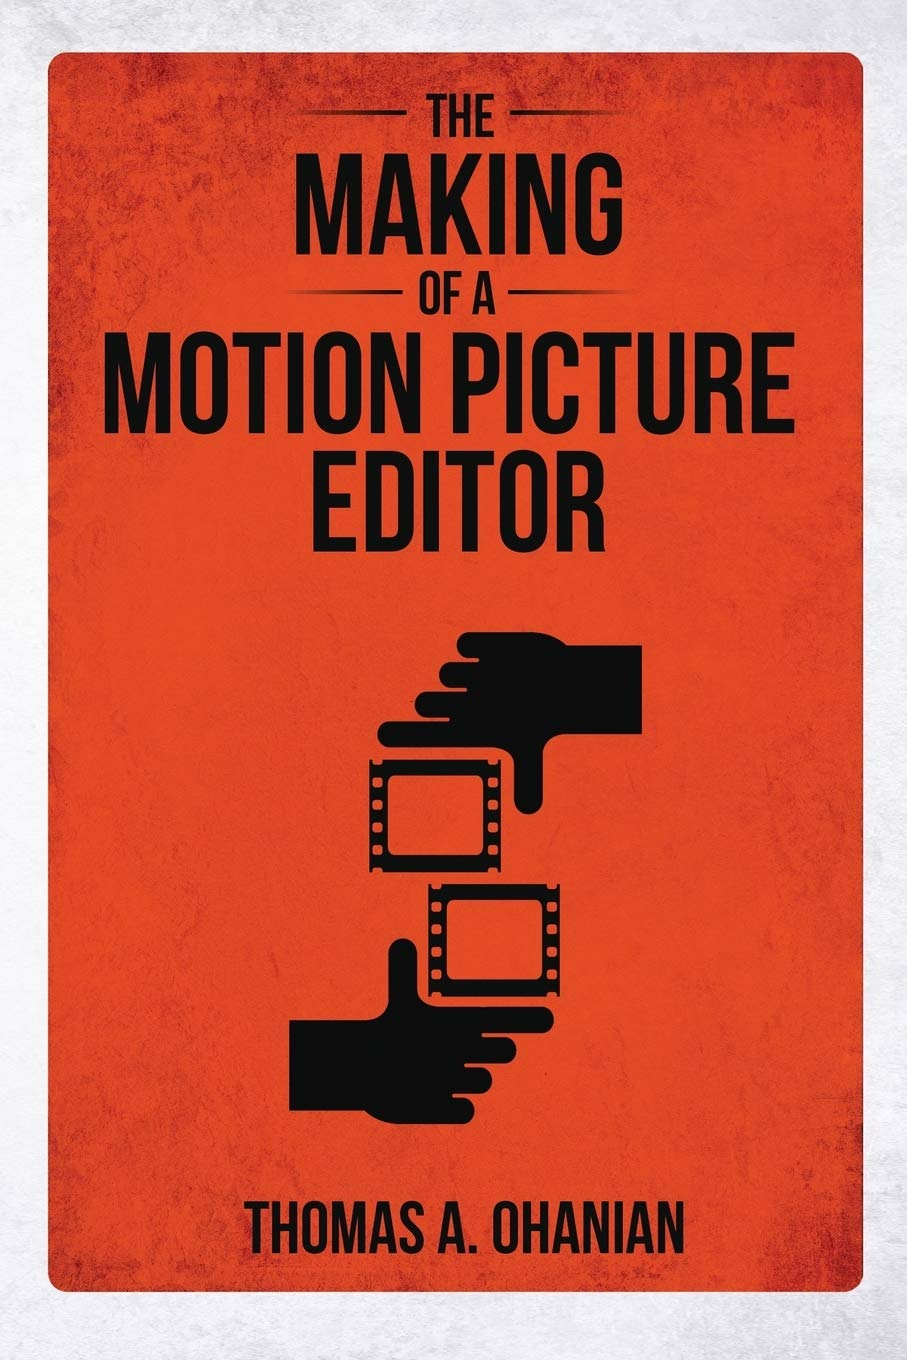 The Making of a Motion Picture Editor cover